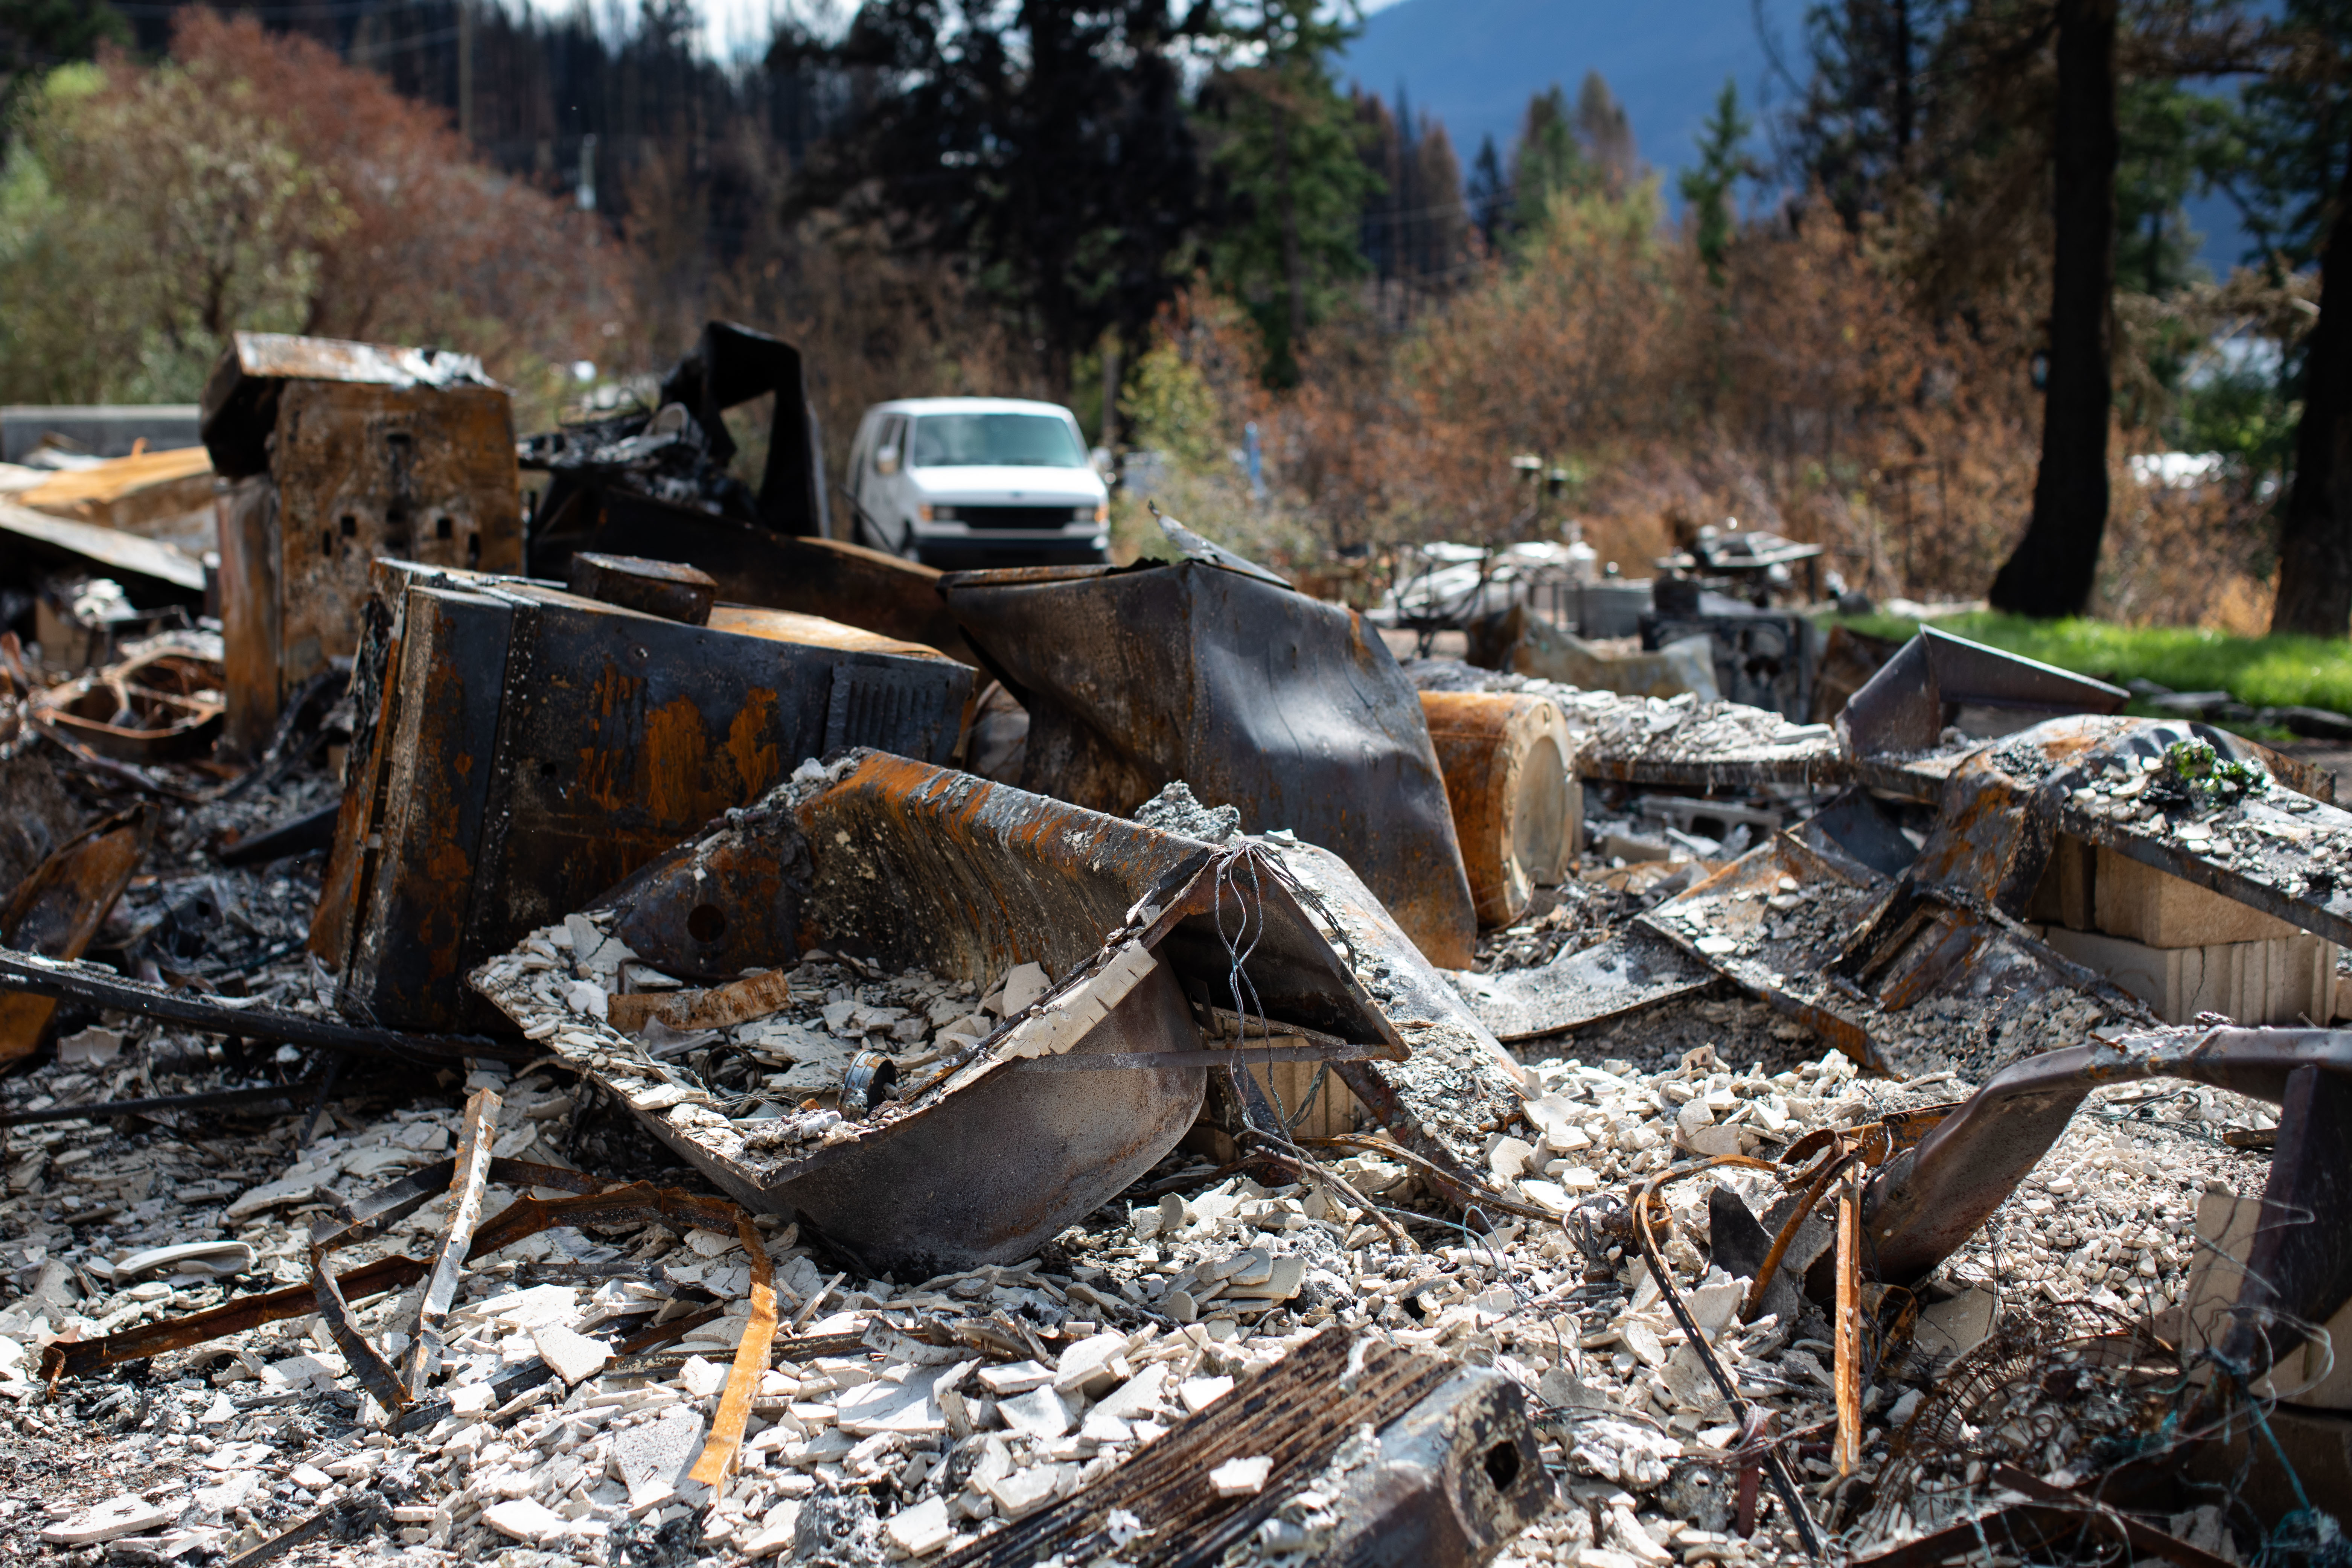 A bathtub lies among the debris from a home that burned down in Monte Lake, B.C., on Sept. 1. The home was destroyed by the White Rock Lake wildfire on Aug. 5. (Maggie MacPherson/CBC)